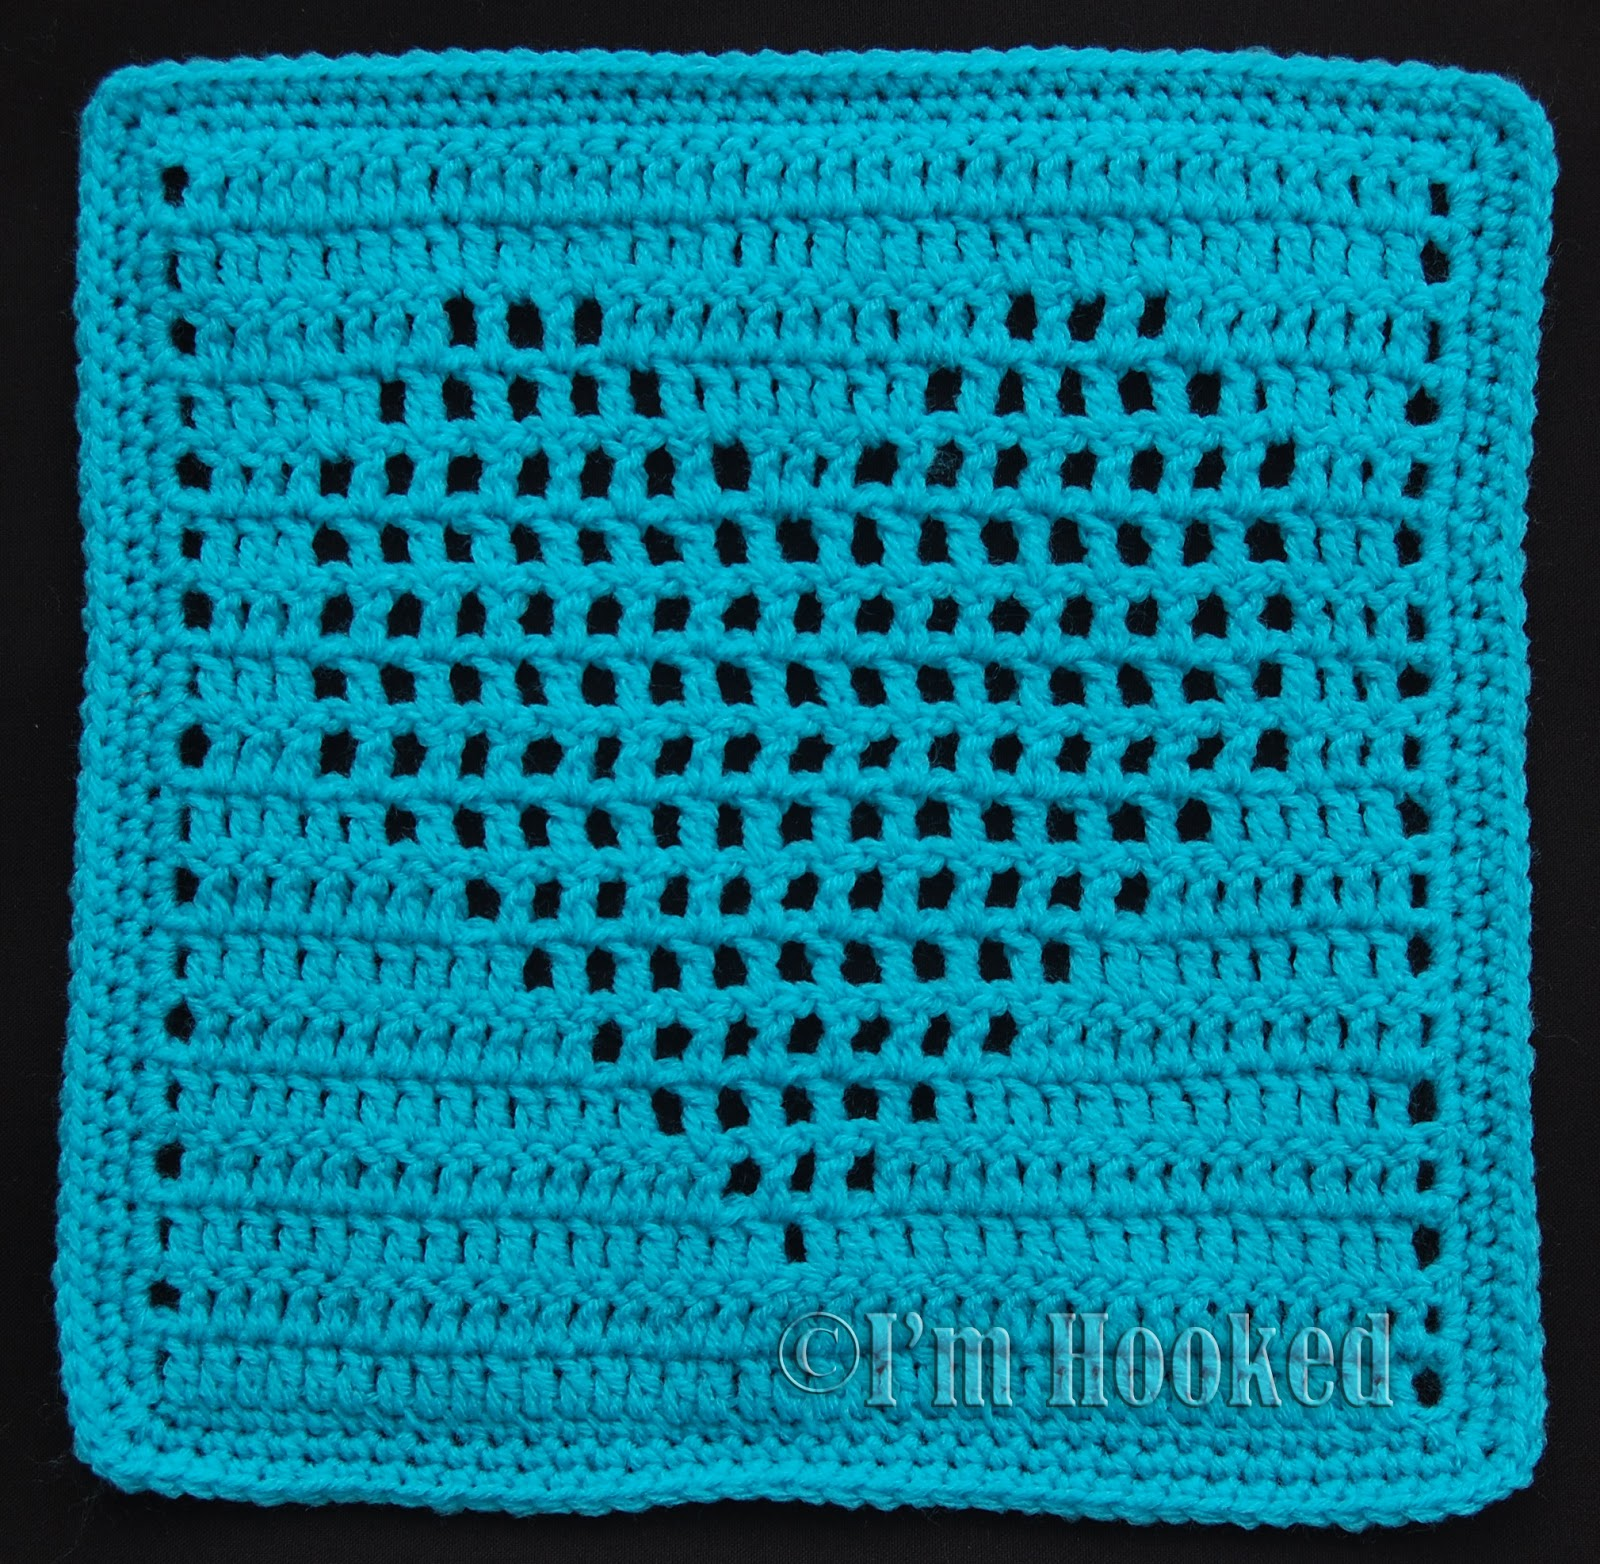 Free Crochet Pattern: Heart Filet Block 2